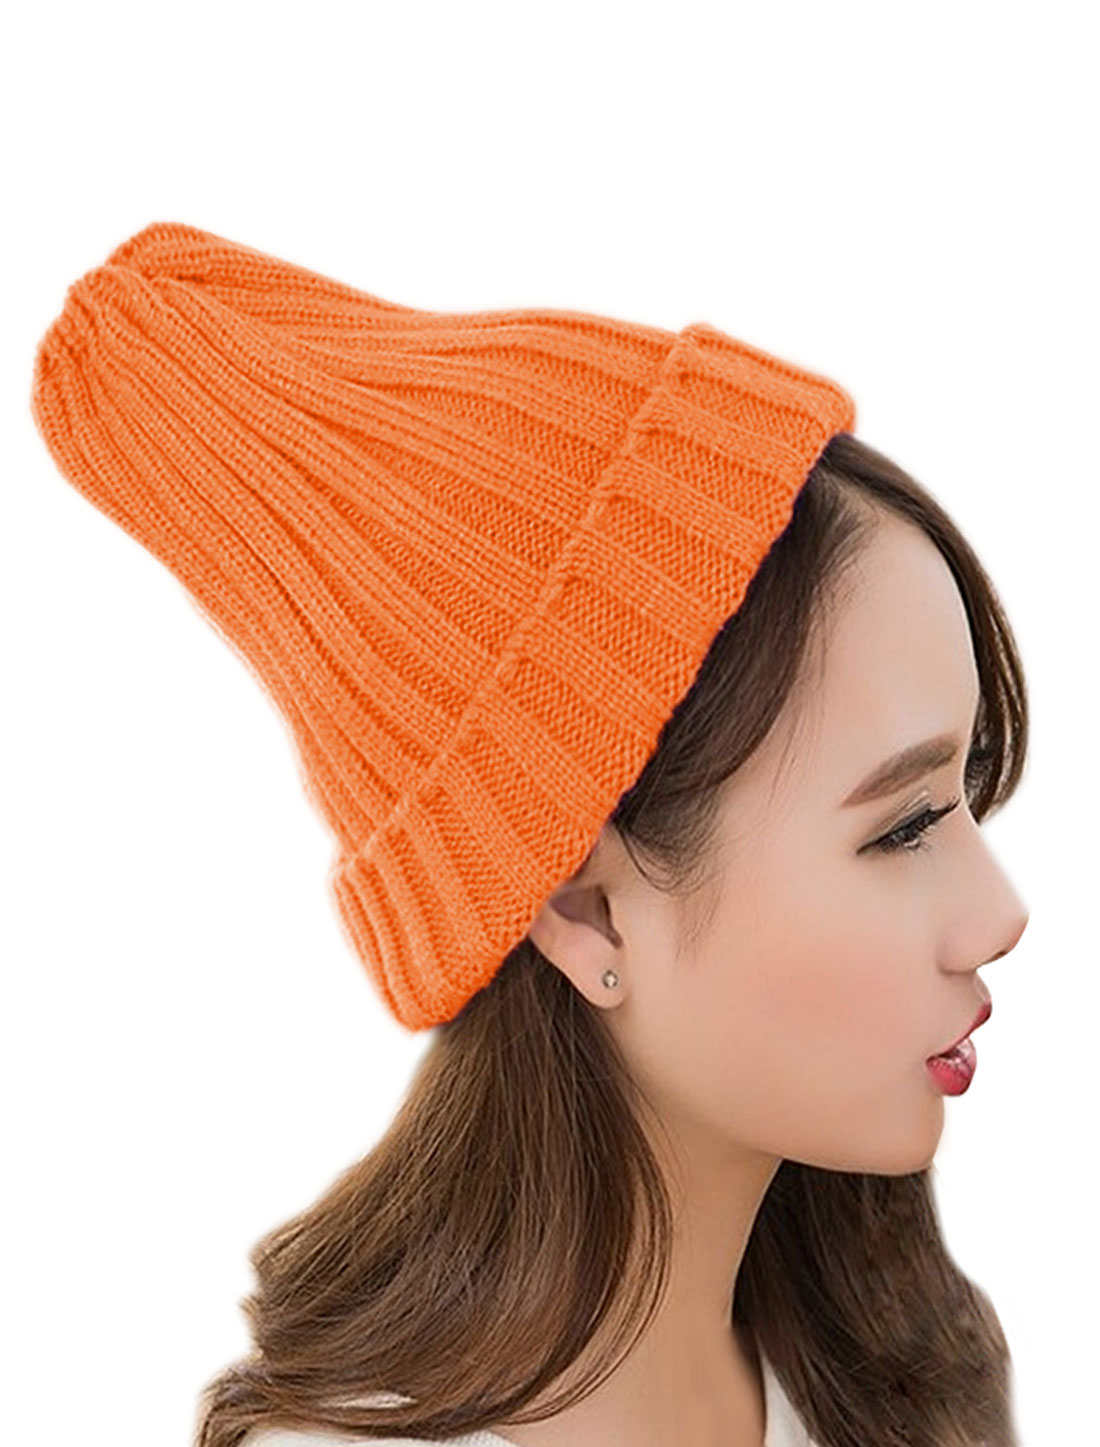 Unisex Casual Stretchy Chunky Slouchy Ribbed Cuffed Beanies Style Hat Orange